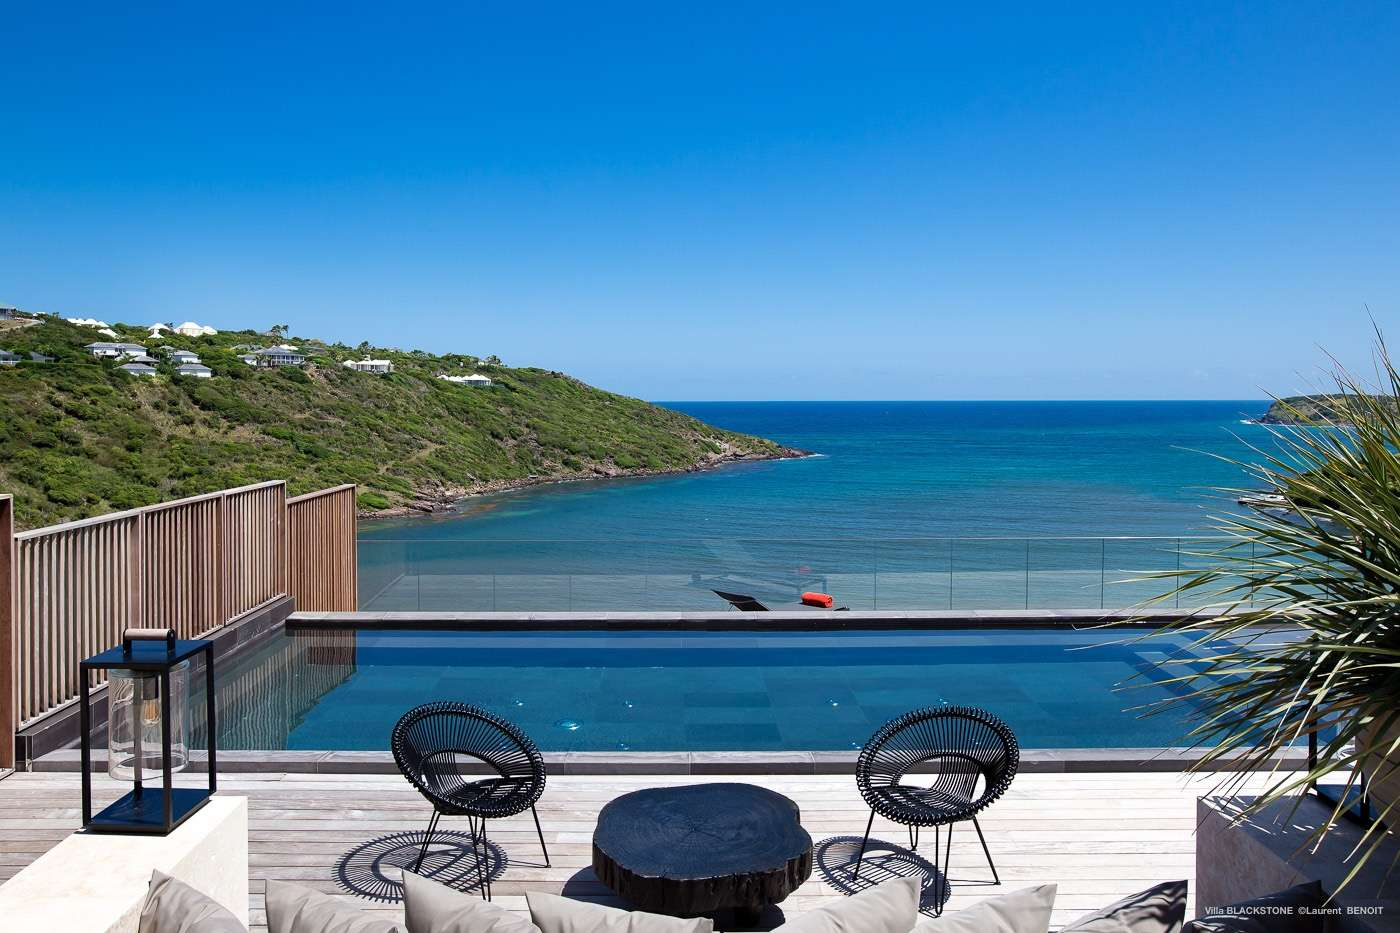 Luxury villa rentals caribbean - St barthelemy - Marigot - No location 4 - Blackstone - Image 1/56